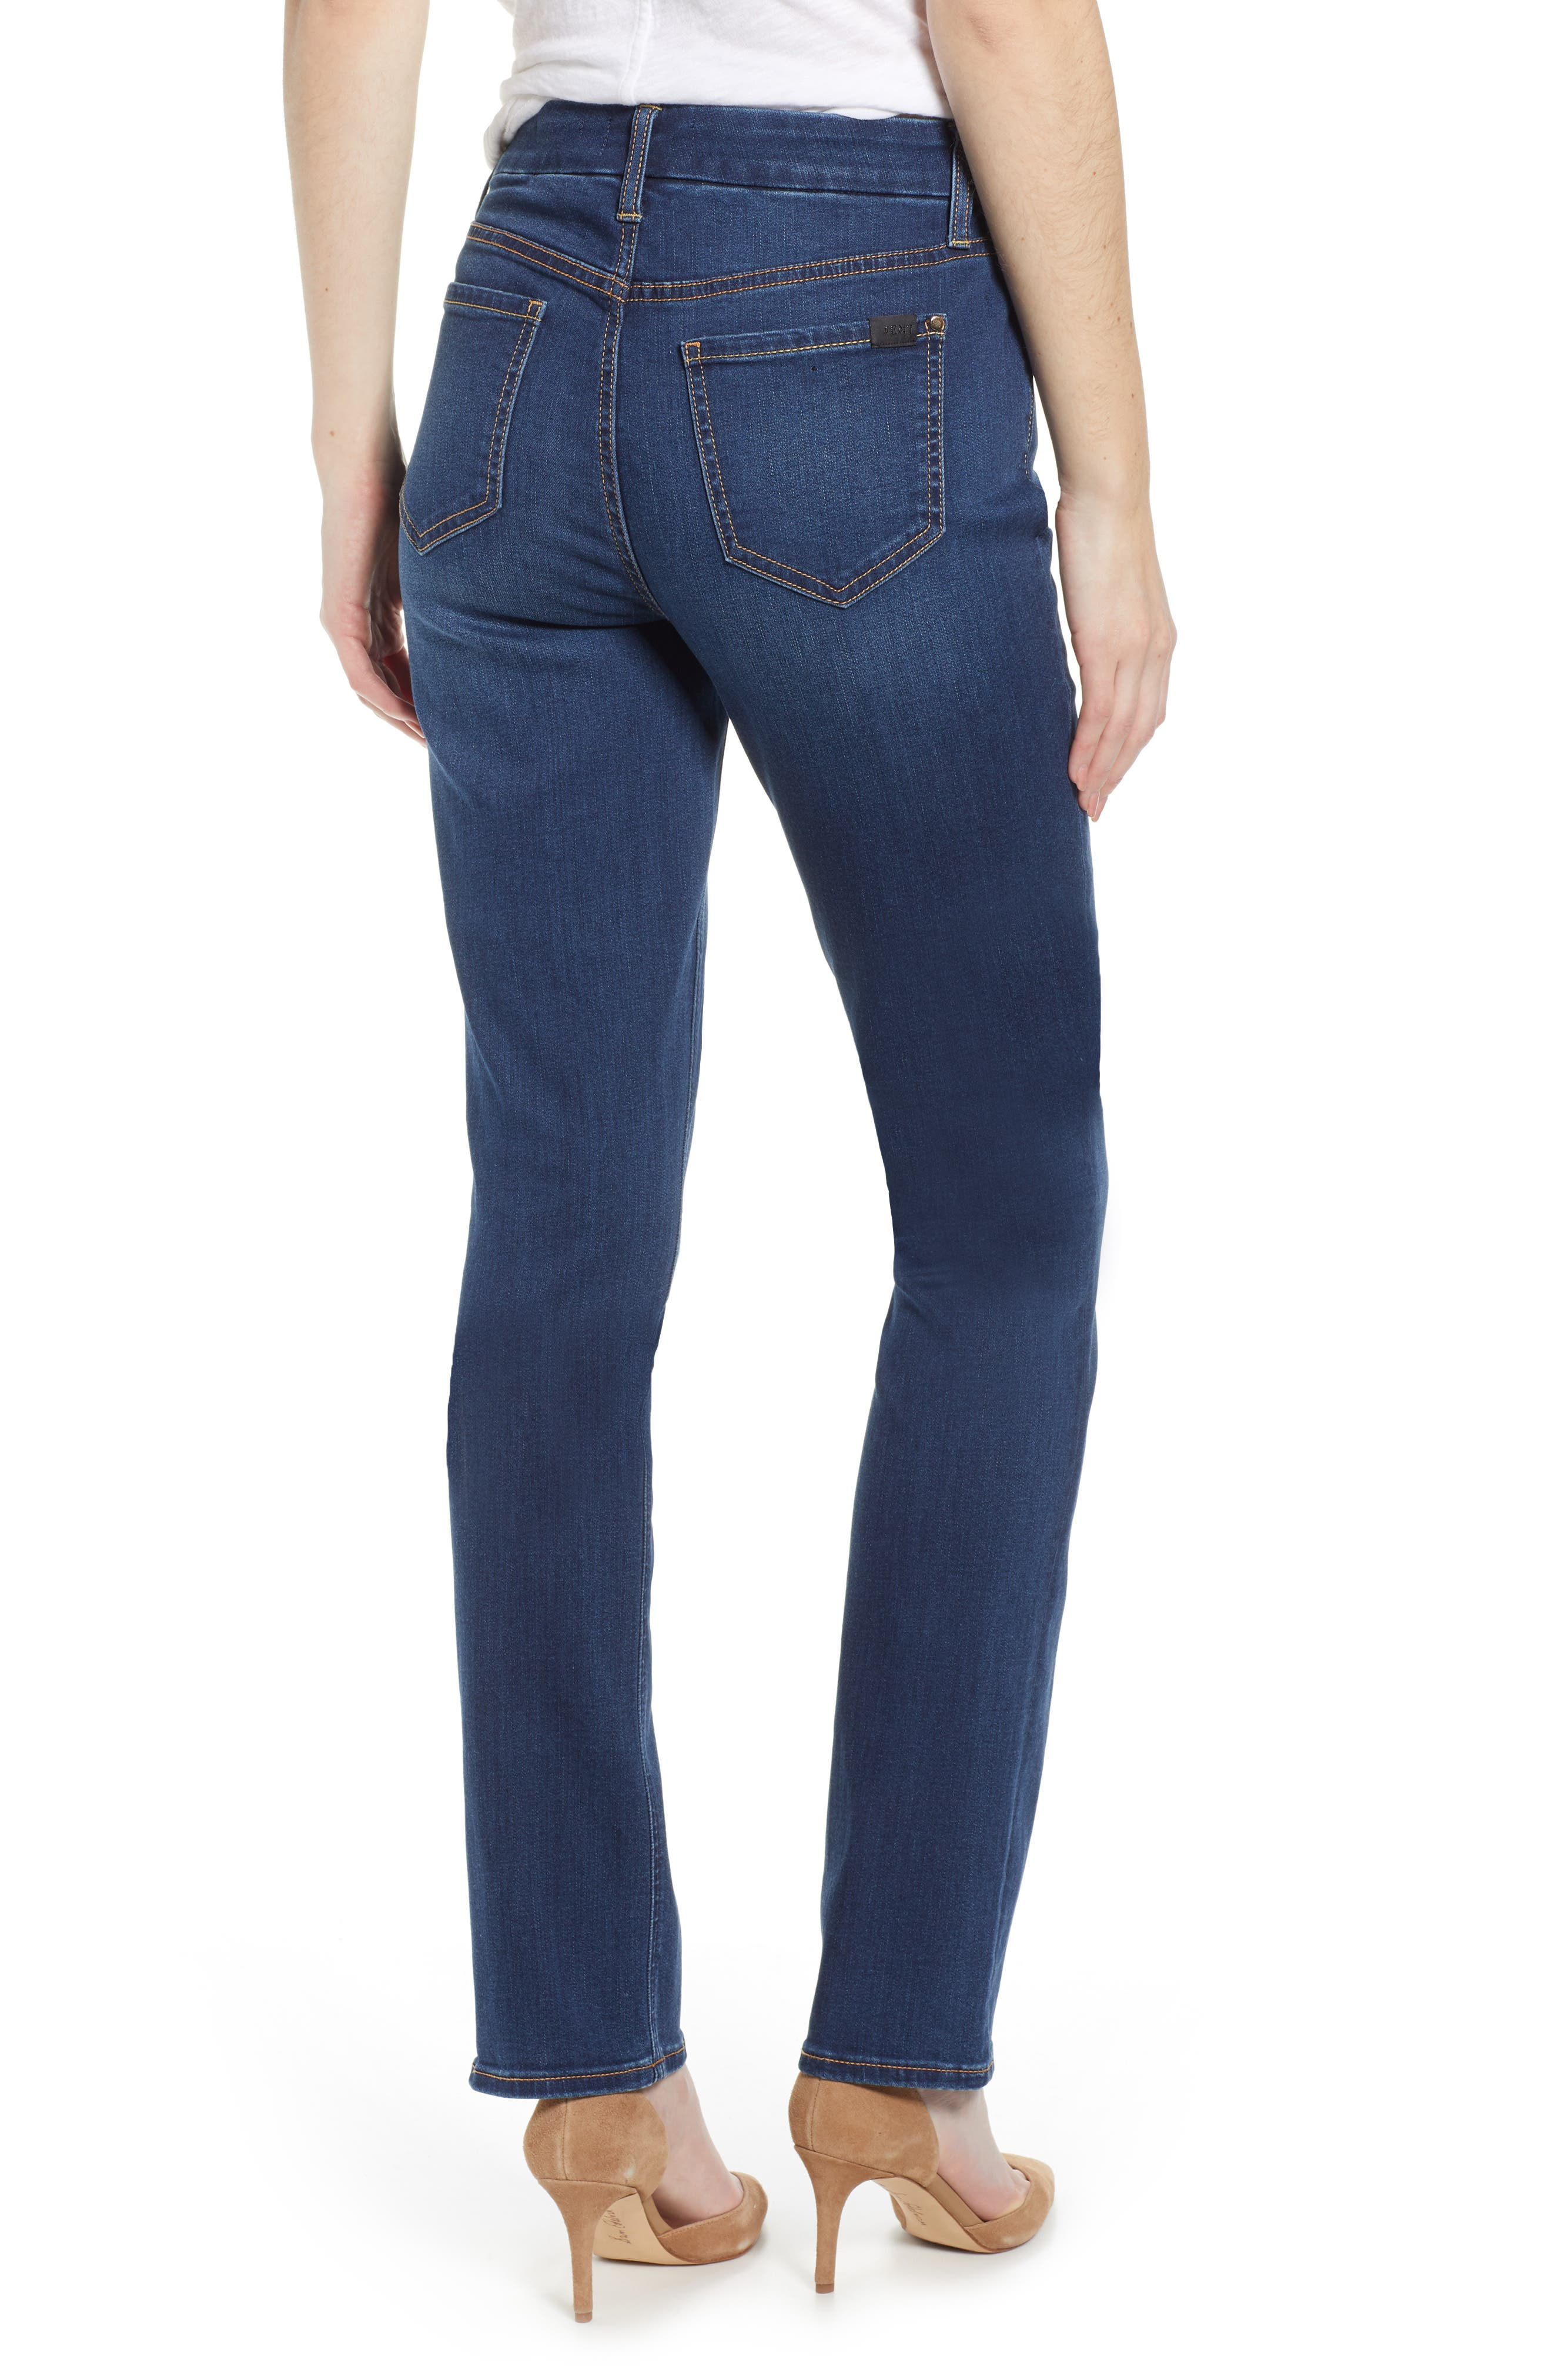 JEN7 BY 7 FOR ALL MANKIND, Slim Straight Leg Jeans, Alternate thumbnail 2, color, 404